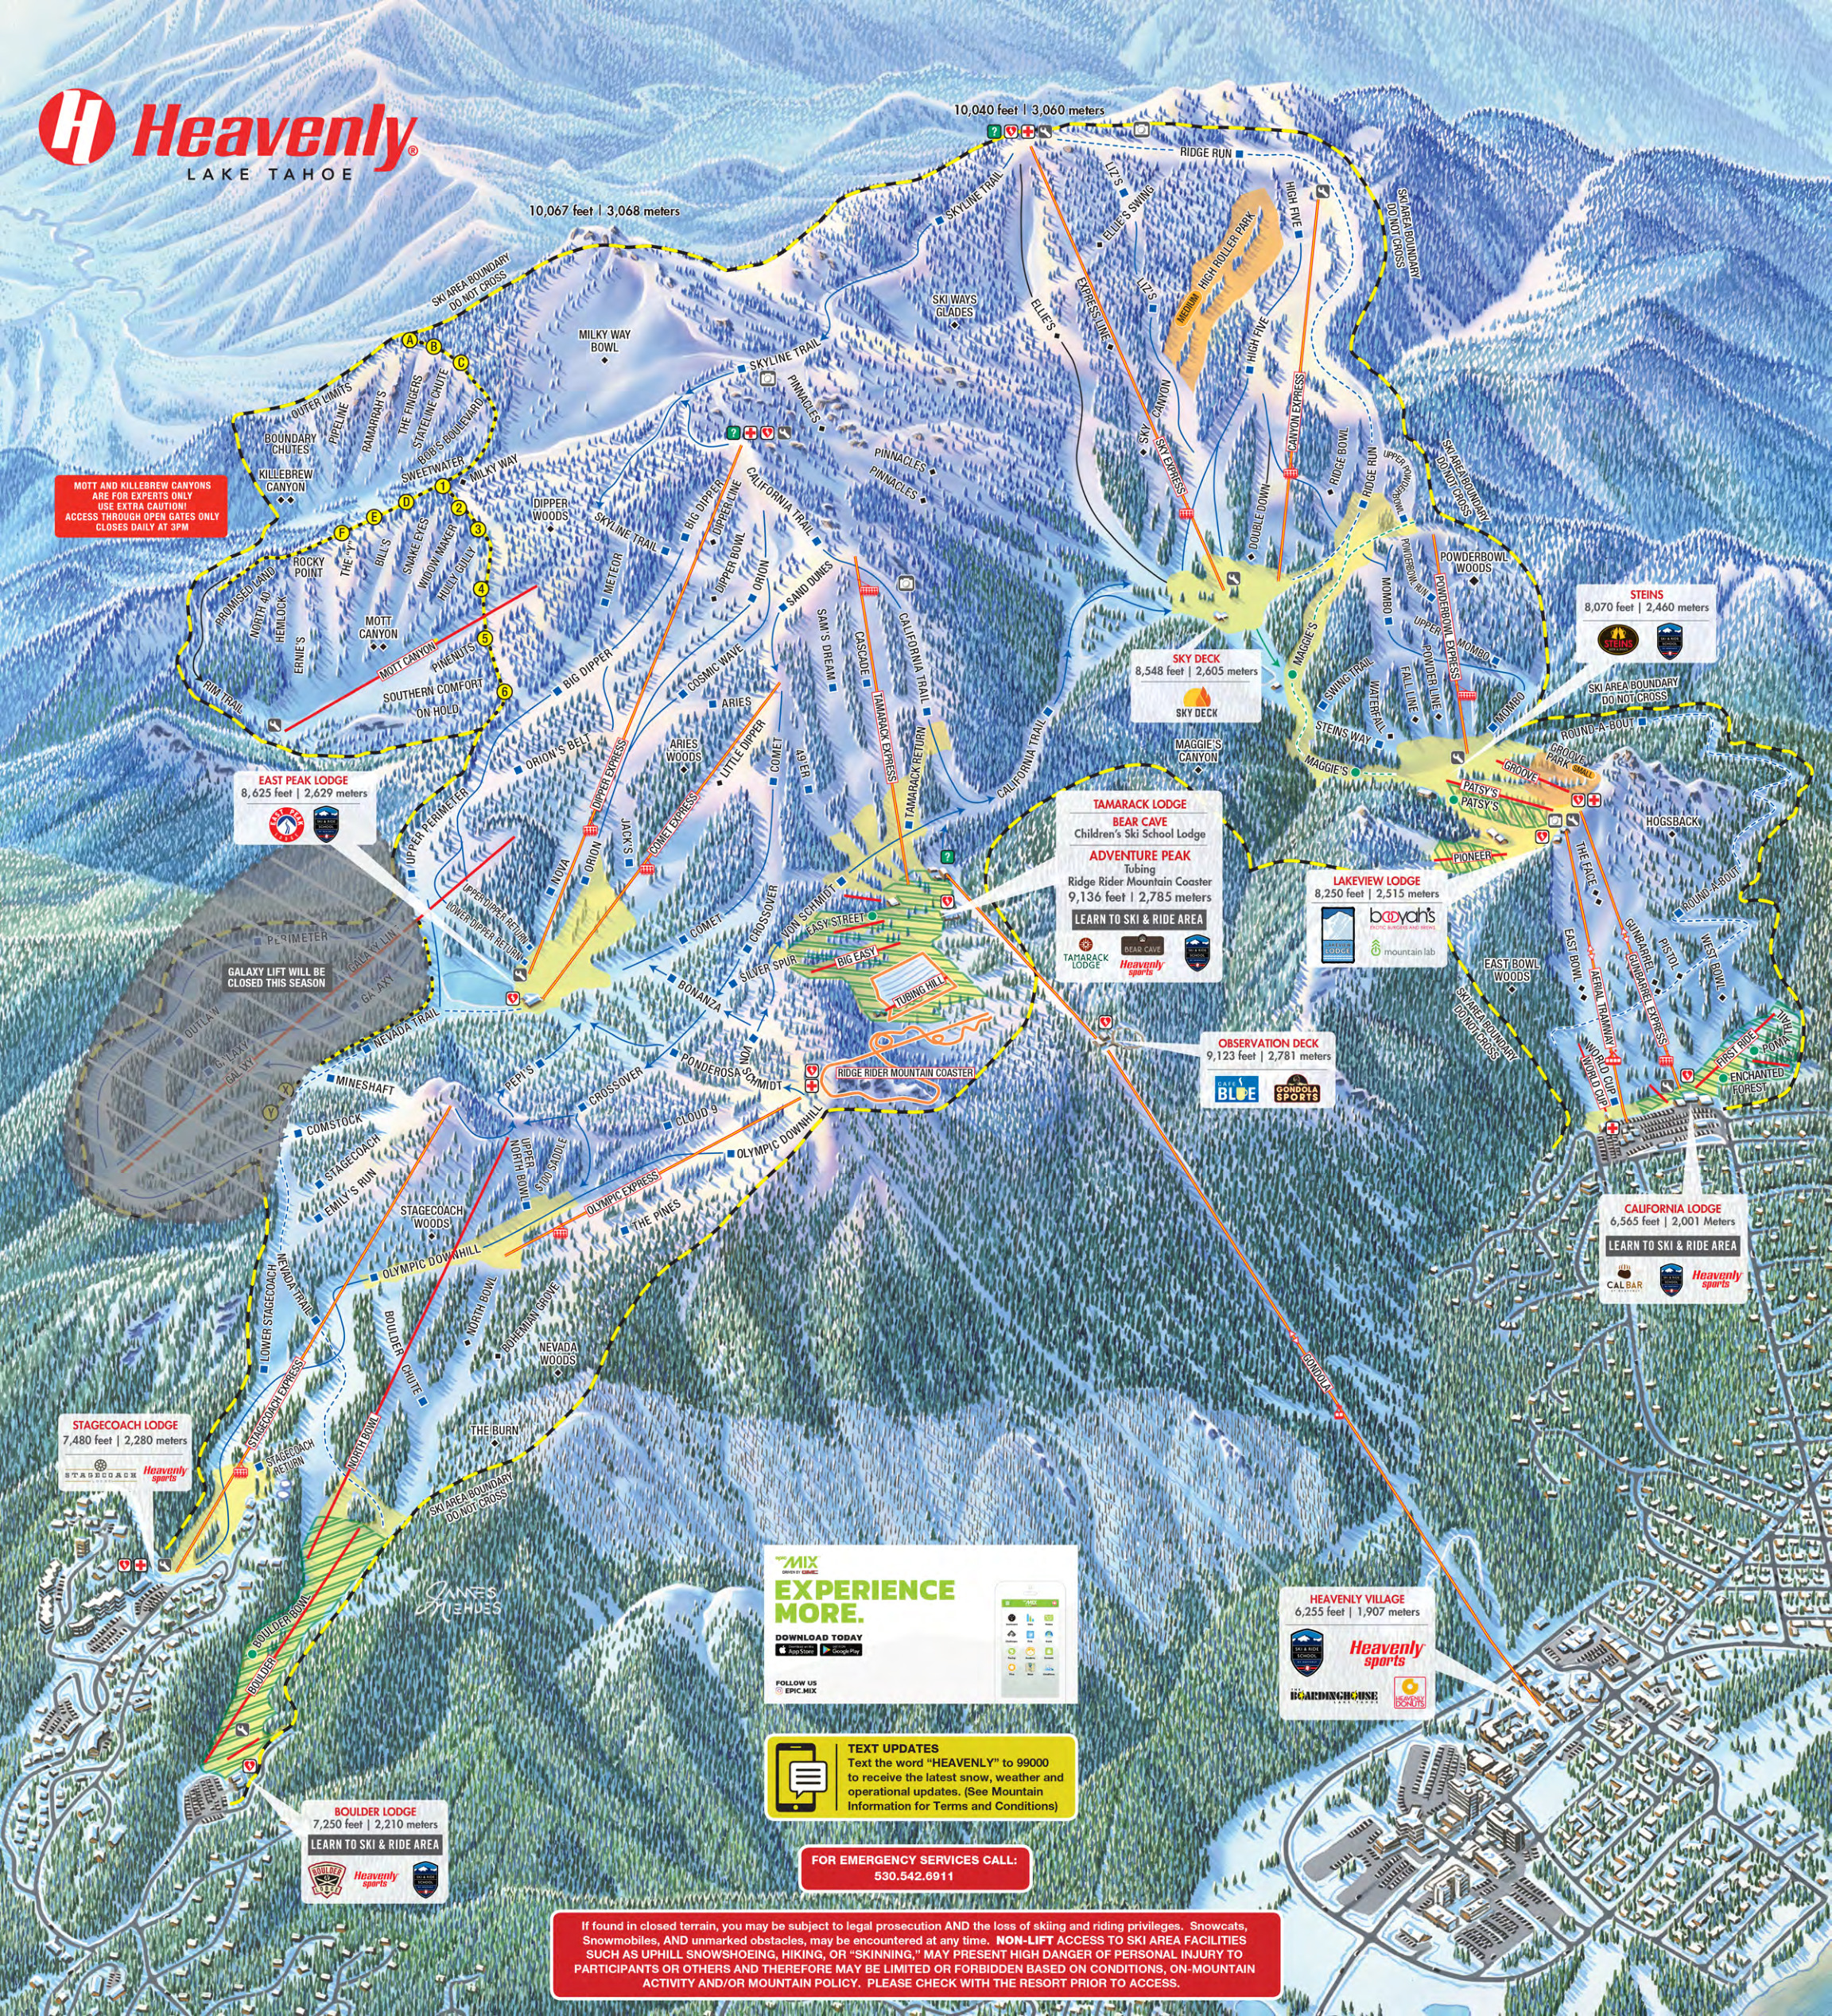 Heavenly Ski Map Heavenly Ski Resort   SkiMap.org